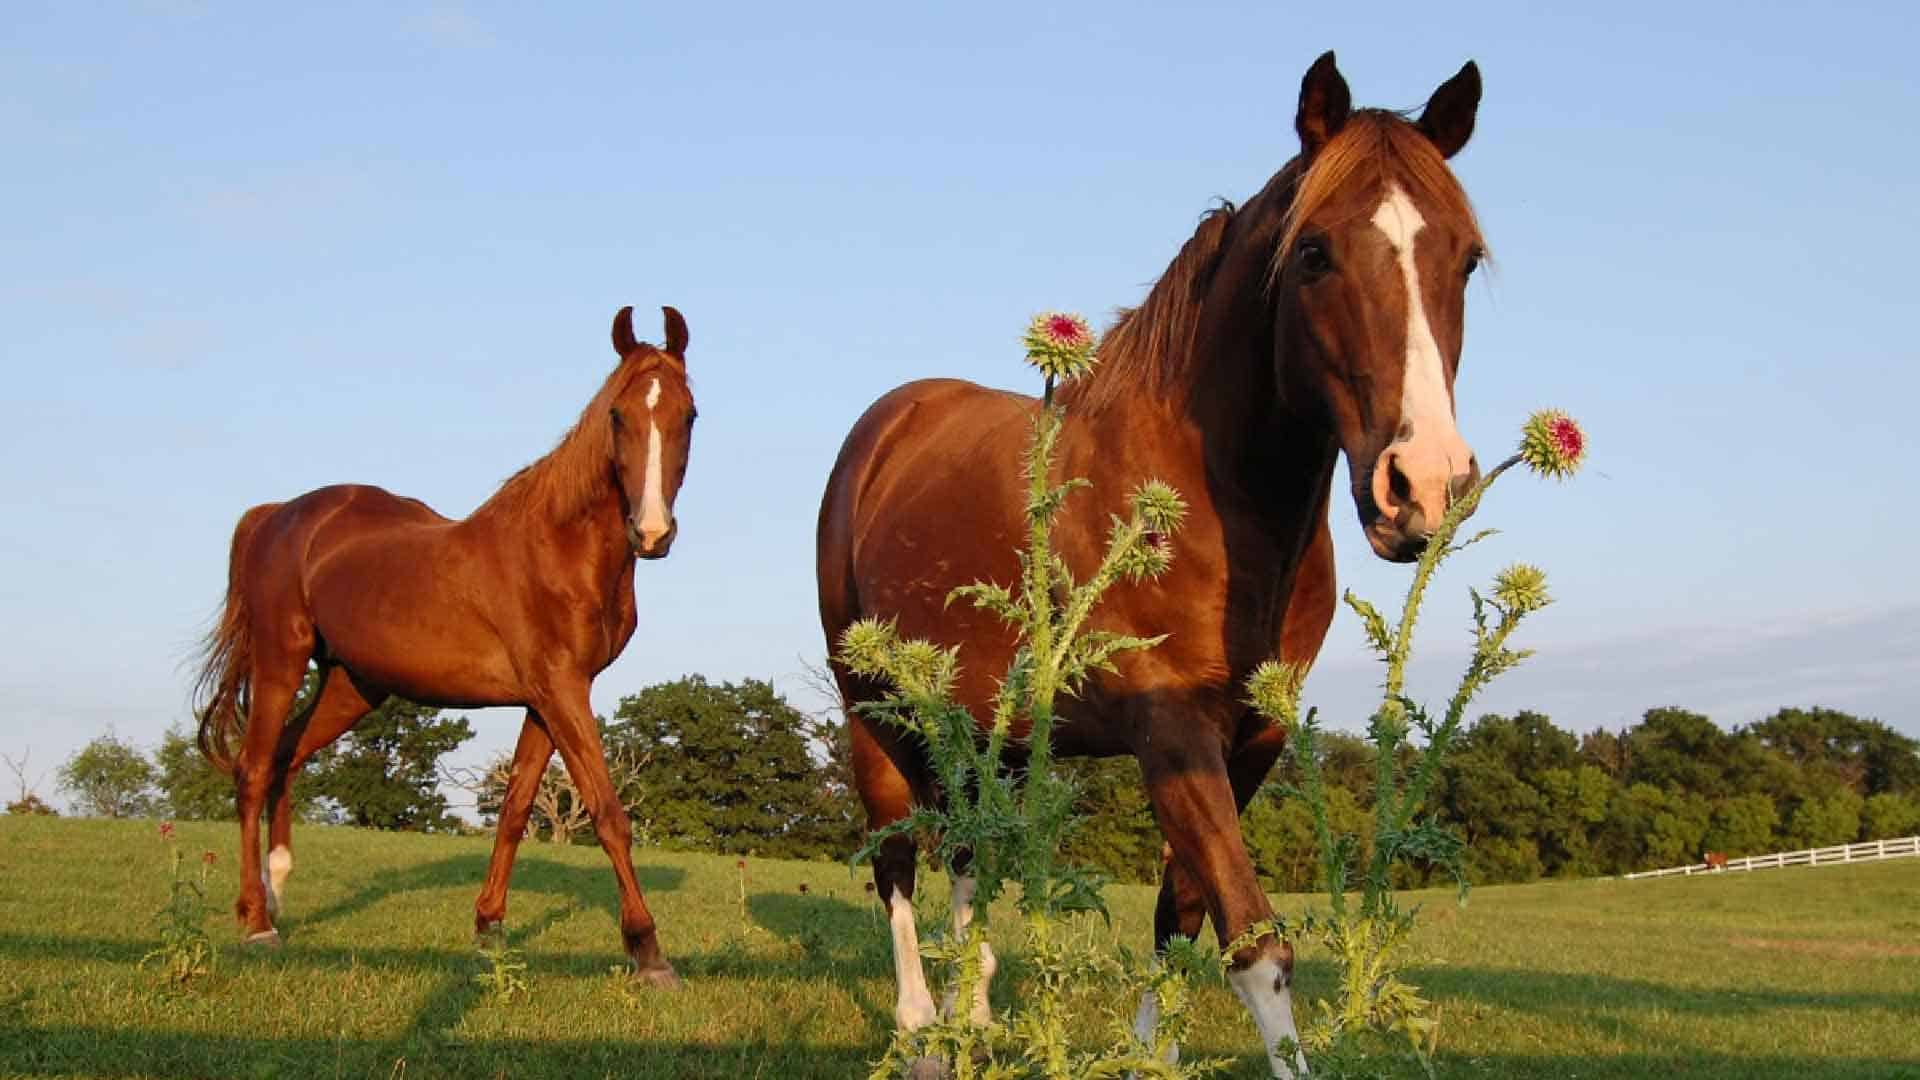 Horses walking in a horse pasture passing a weed.